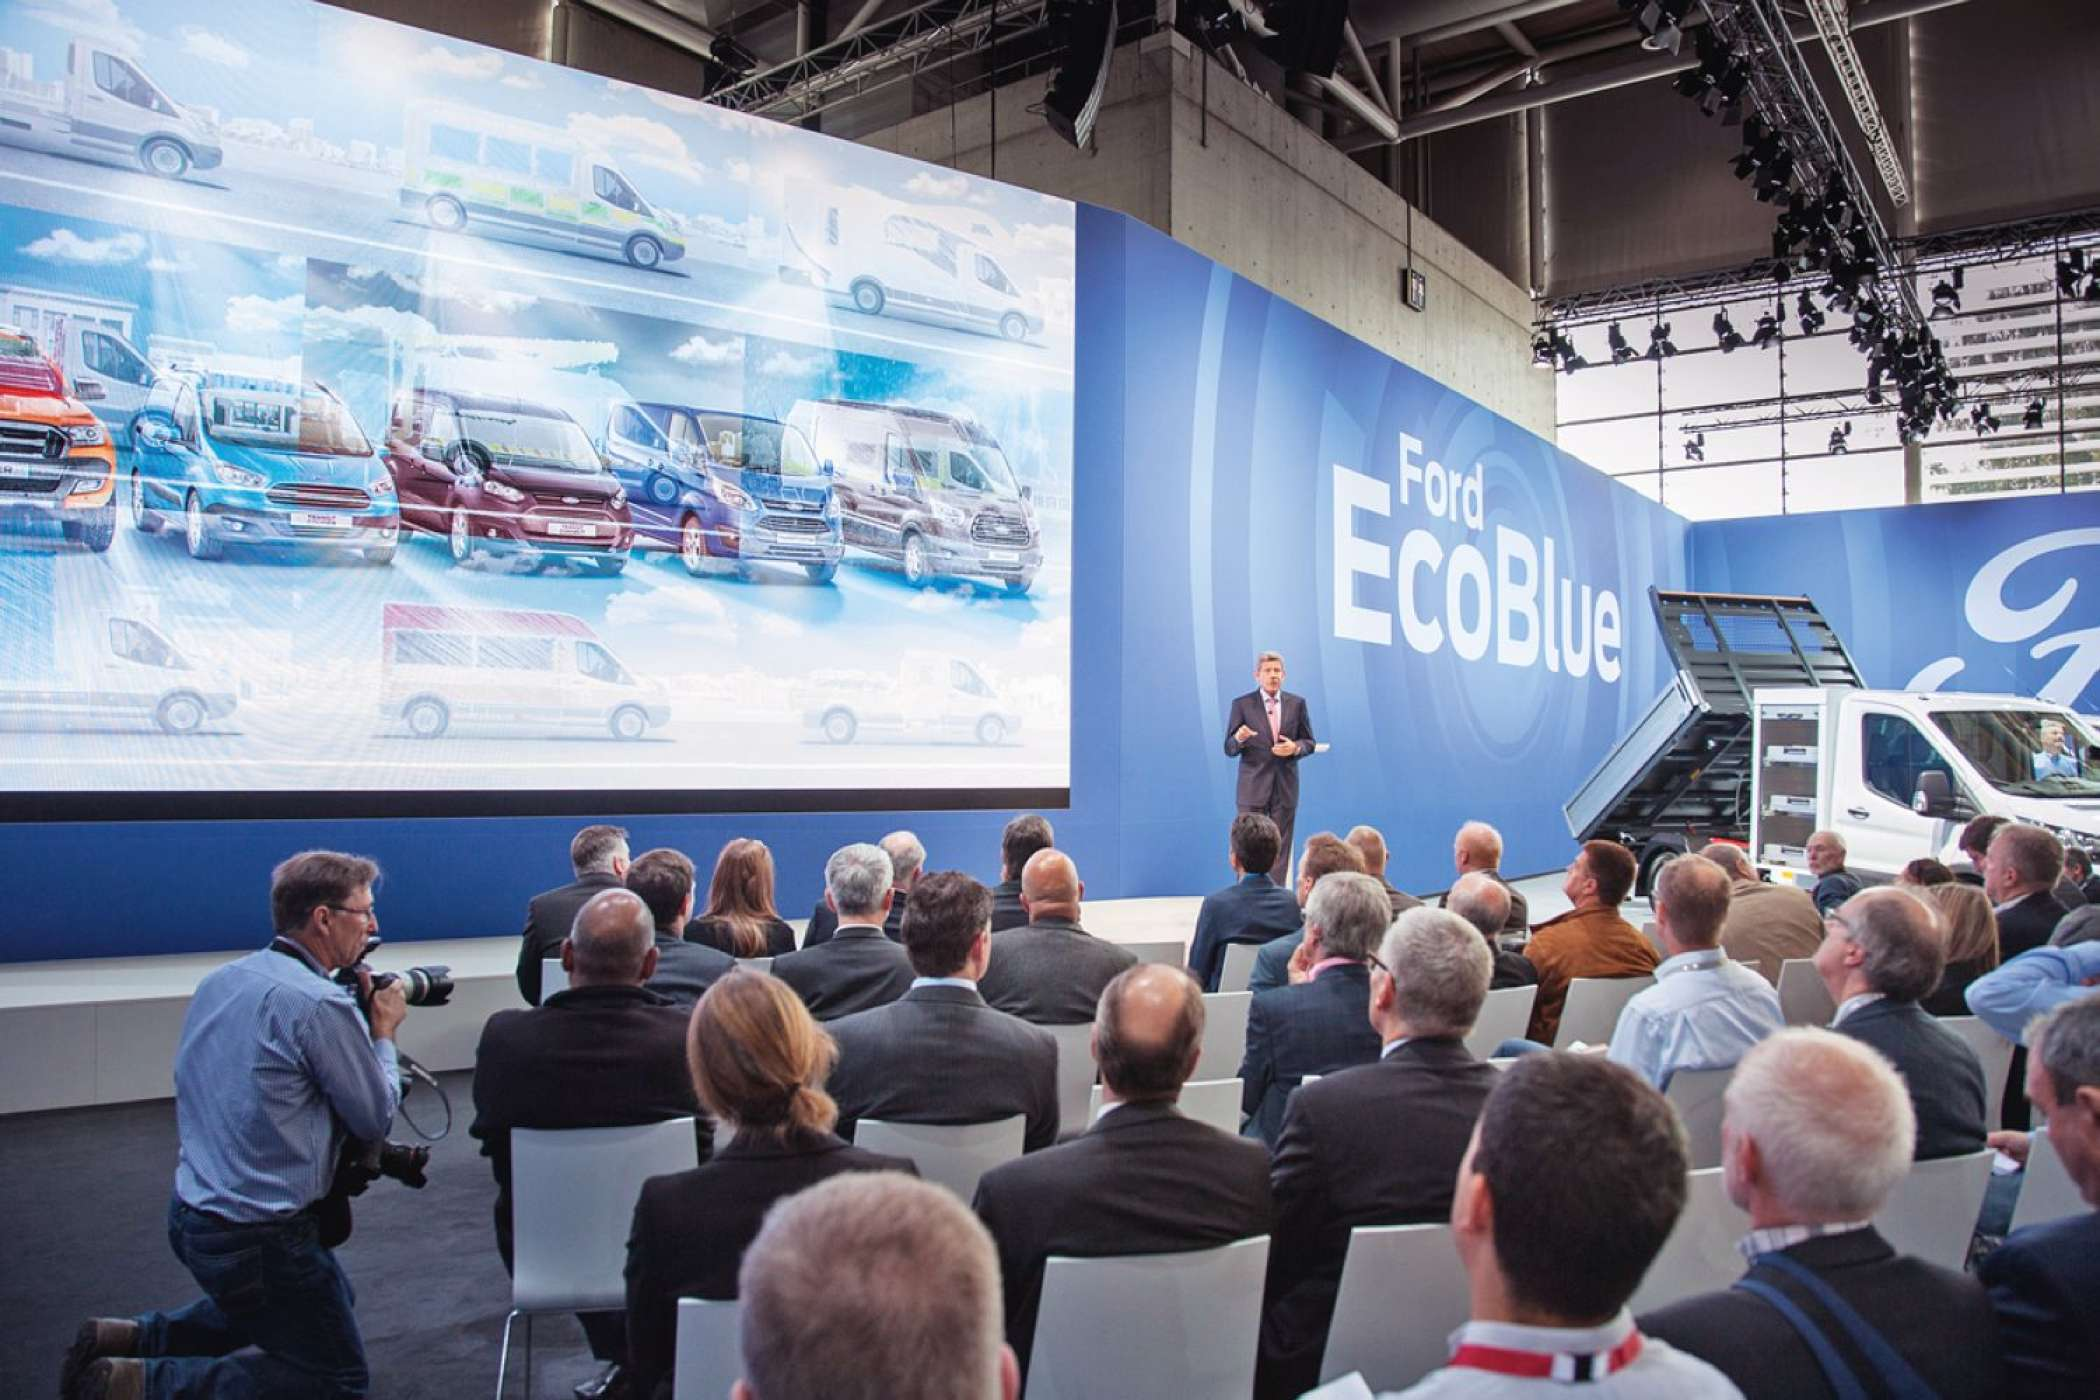 EcoBlue: Reges Interesse am Thema Euro 6 bei Ford. |Foto: IAA aktuell